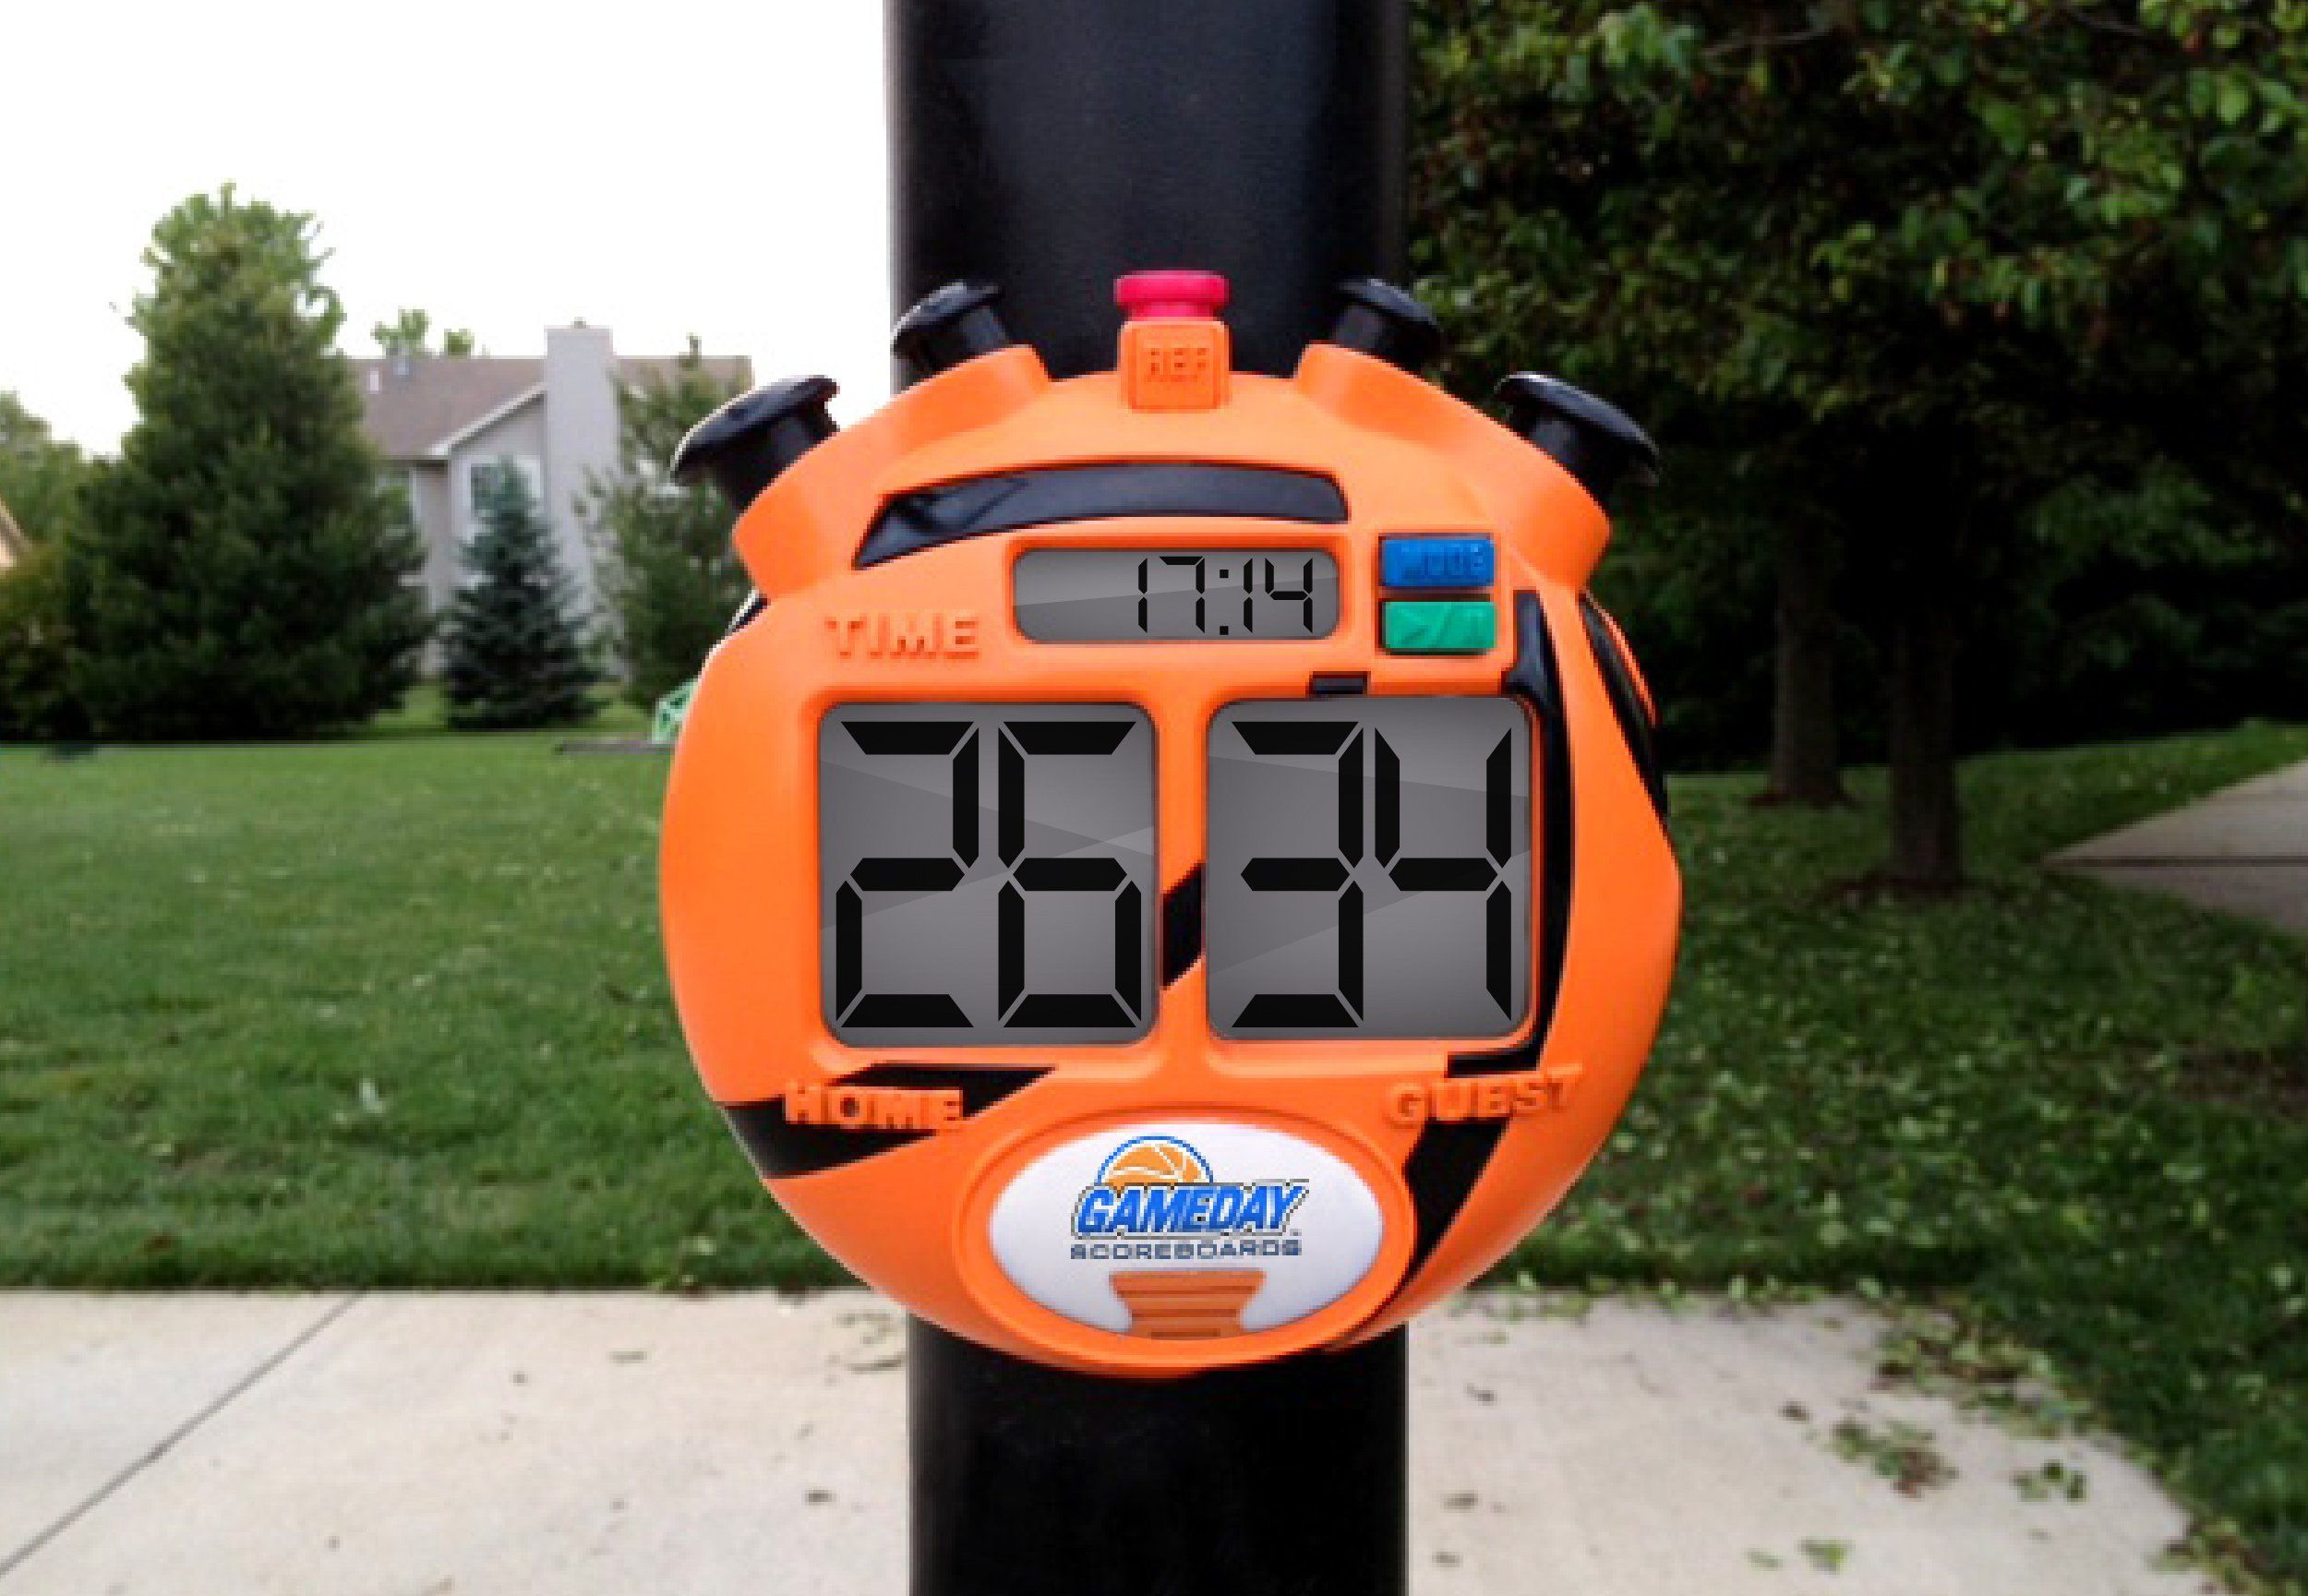 gameday basketball scoreboard for kids portable driveway basketball